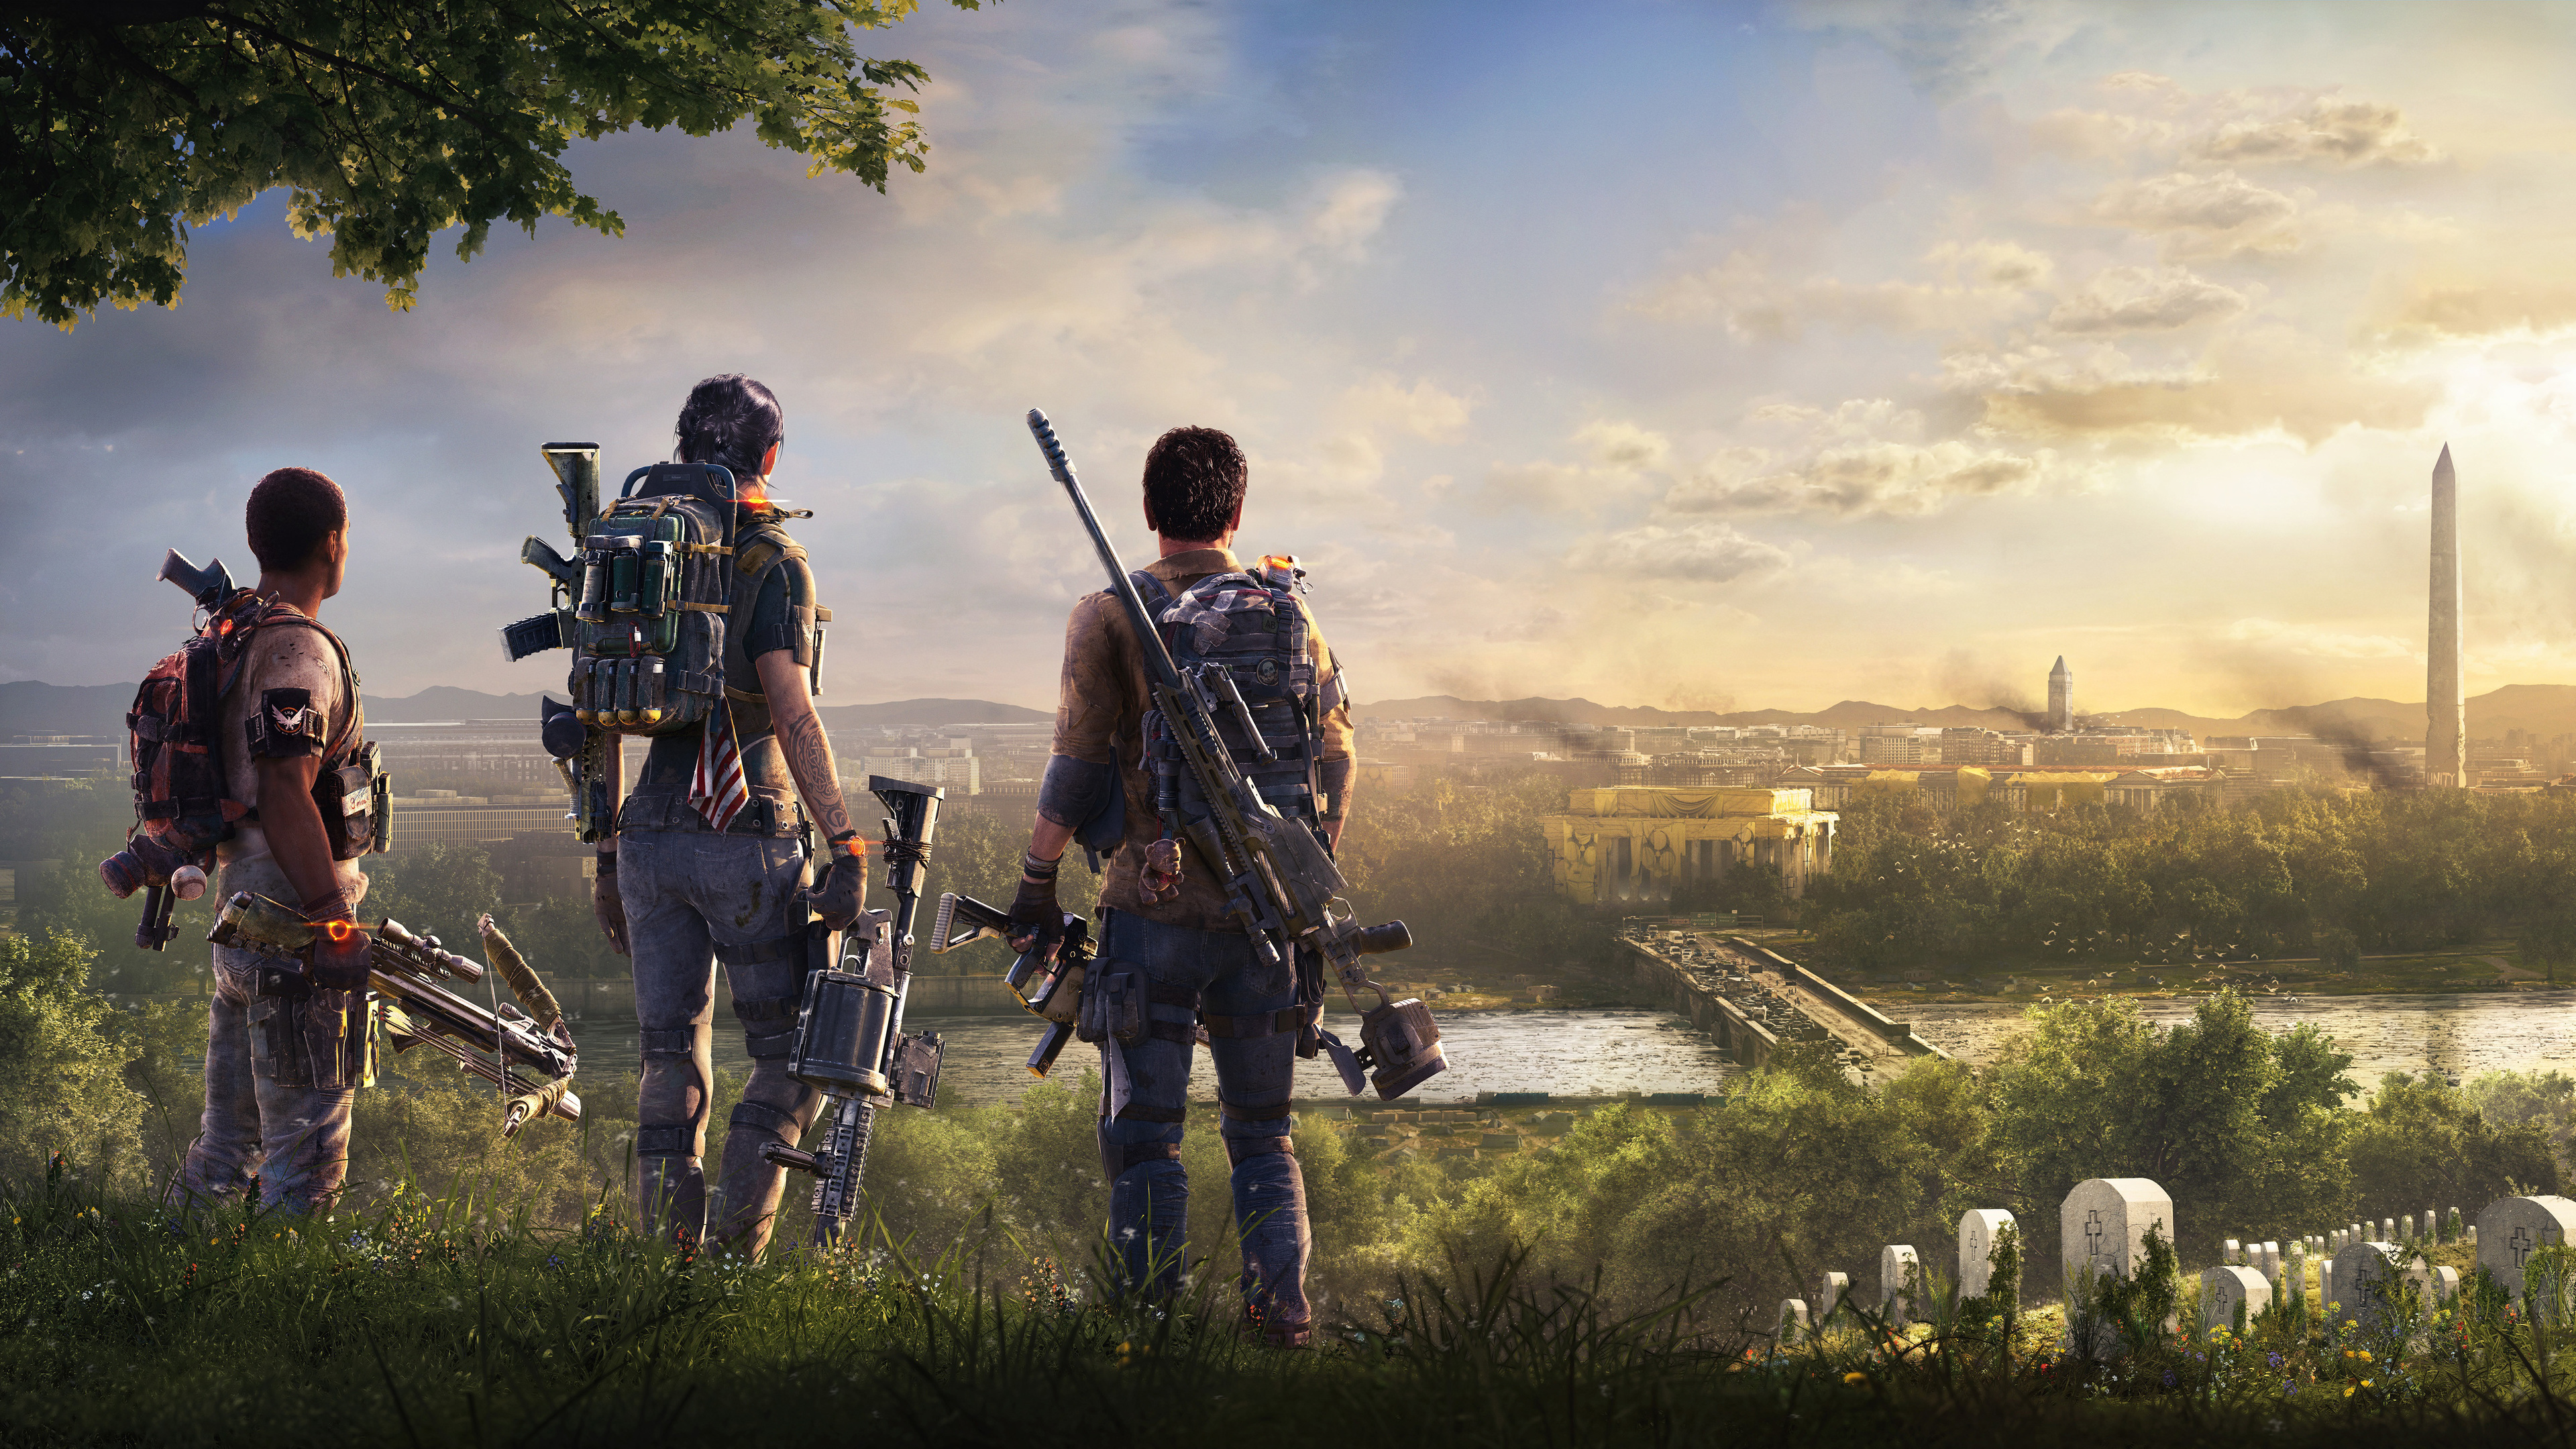 Wallpaper 4k Tom Clancys The Division 2 5k 2018 Games Wallpapers